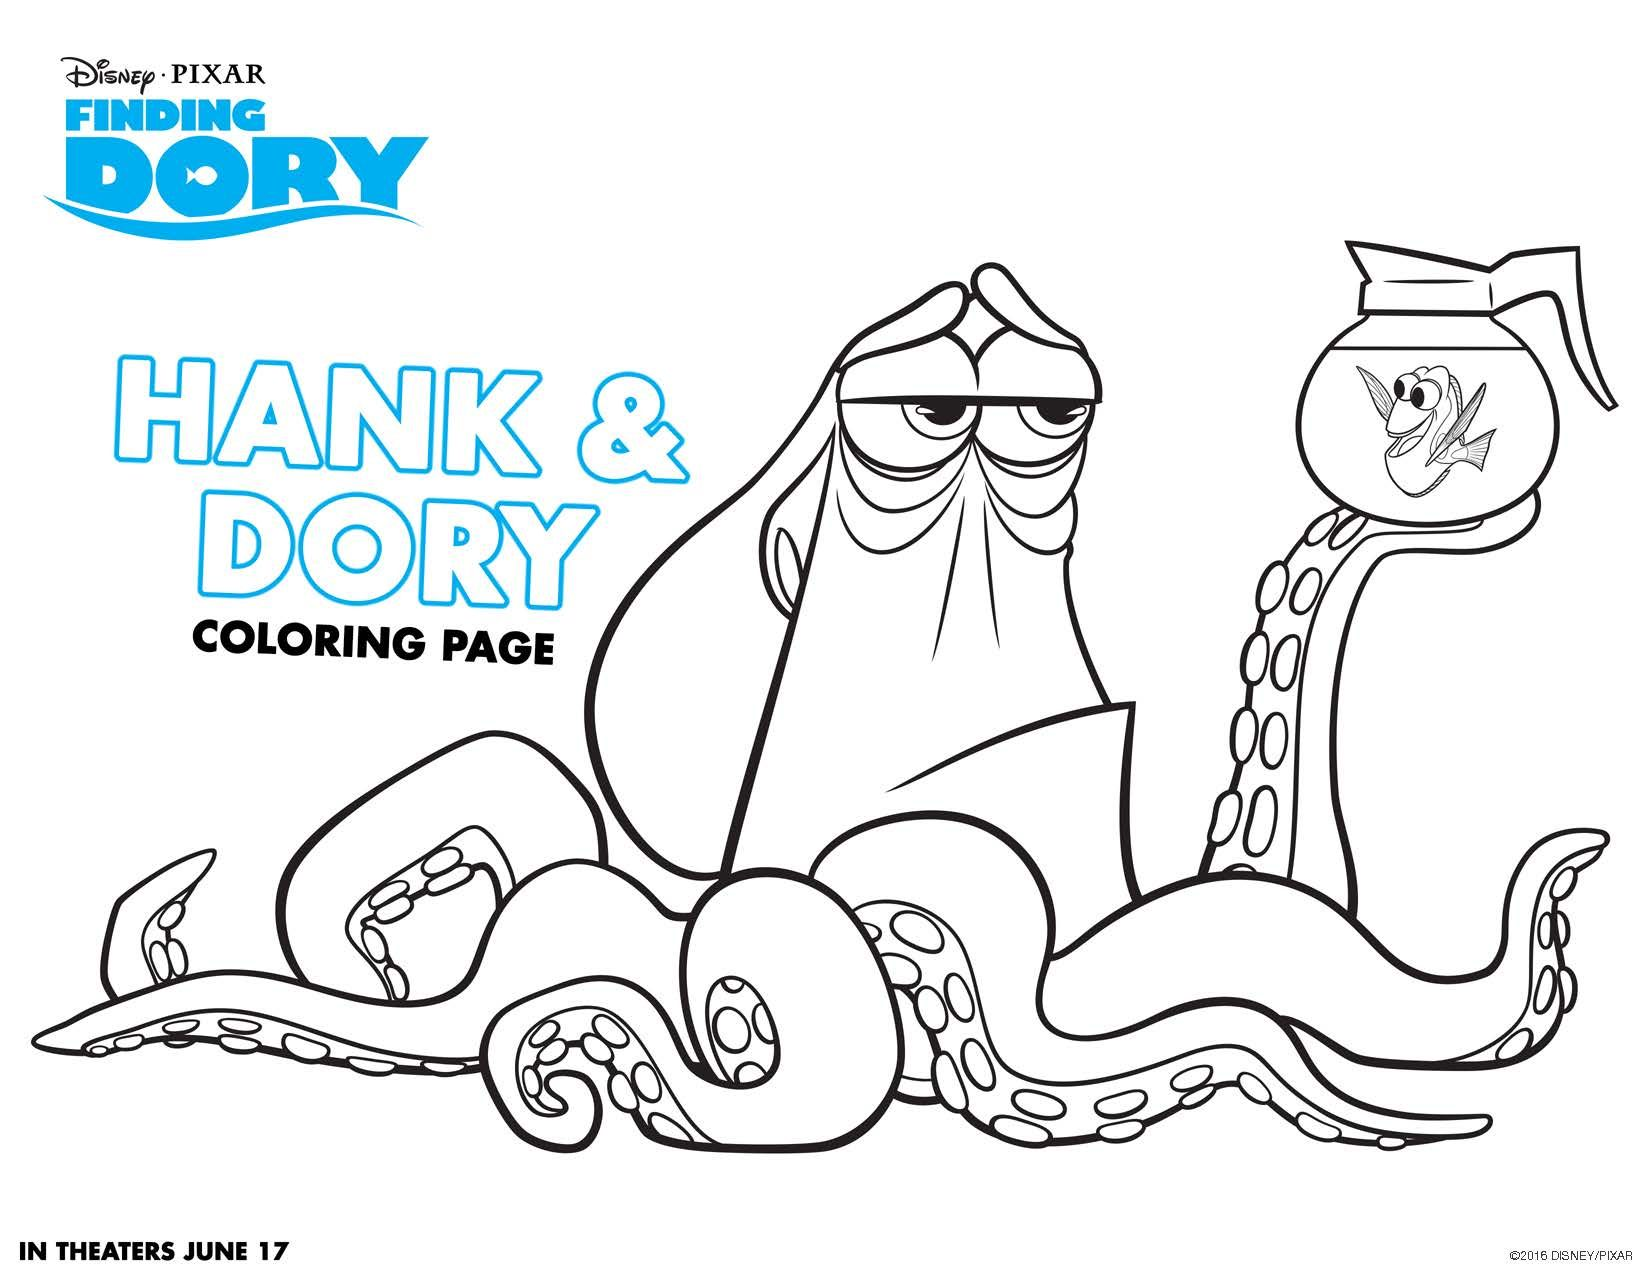 Fr free coloring pages for june - Finding Dory Coloring Sheets Hank And Dory